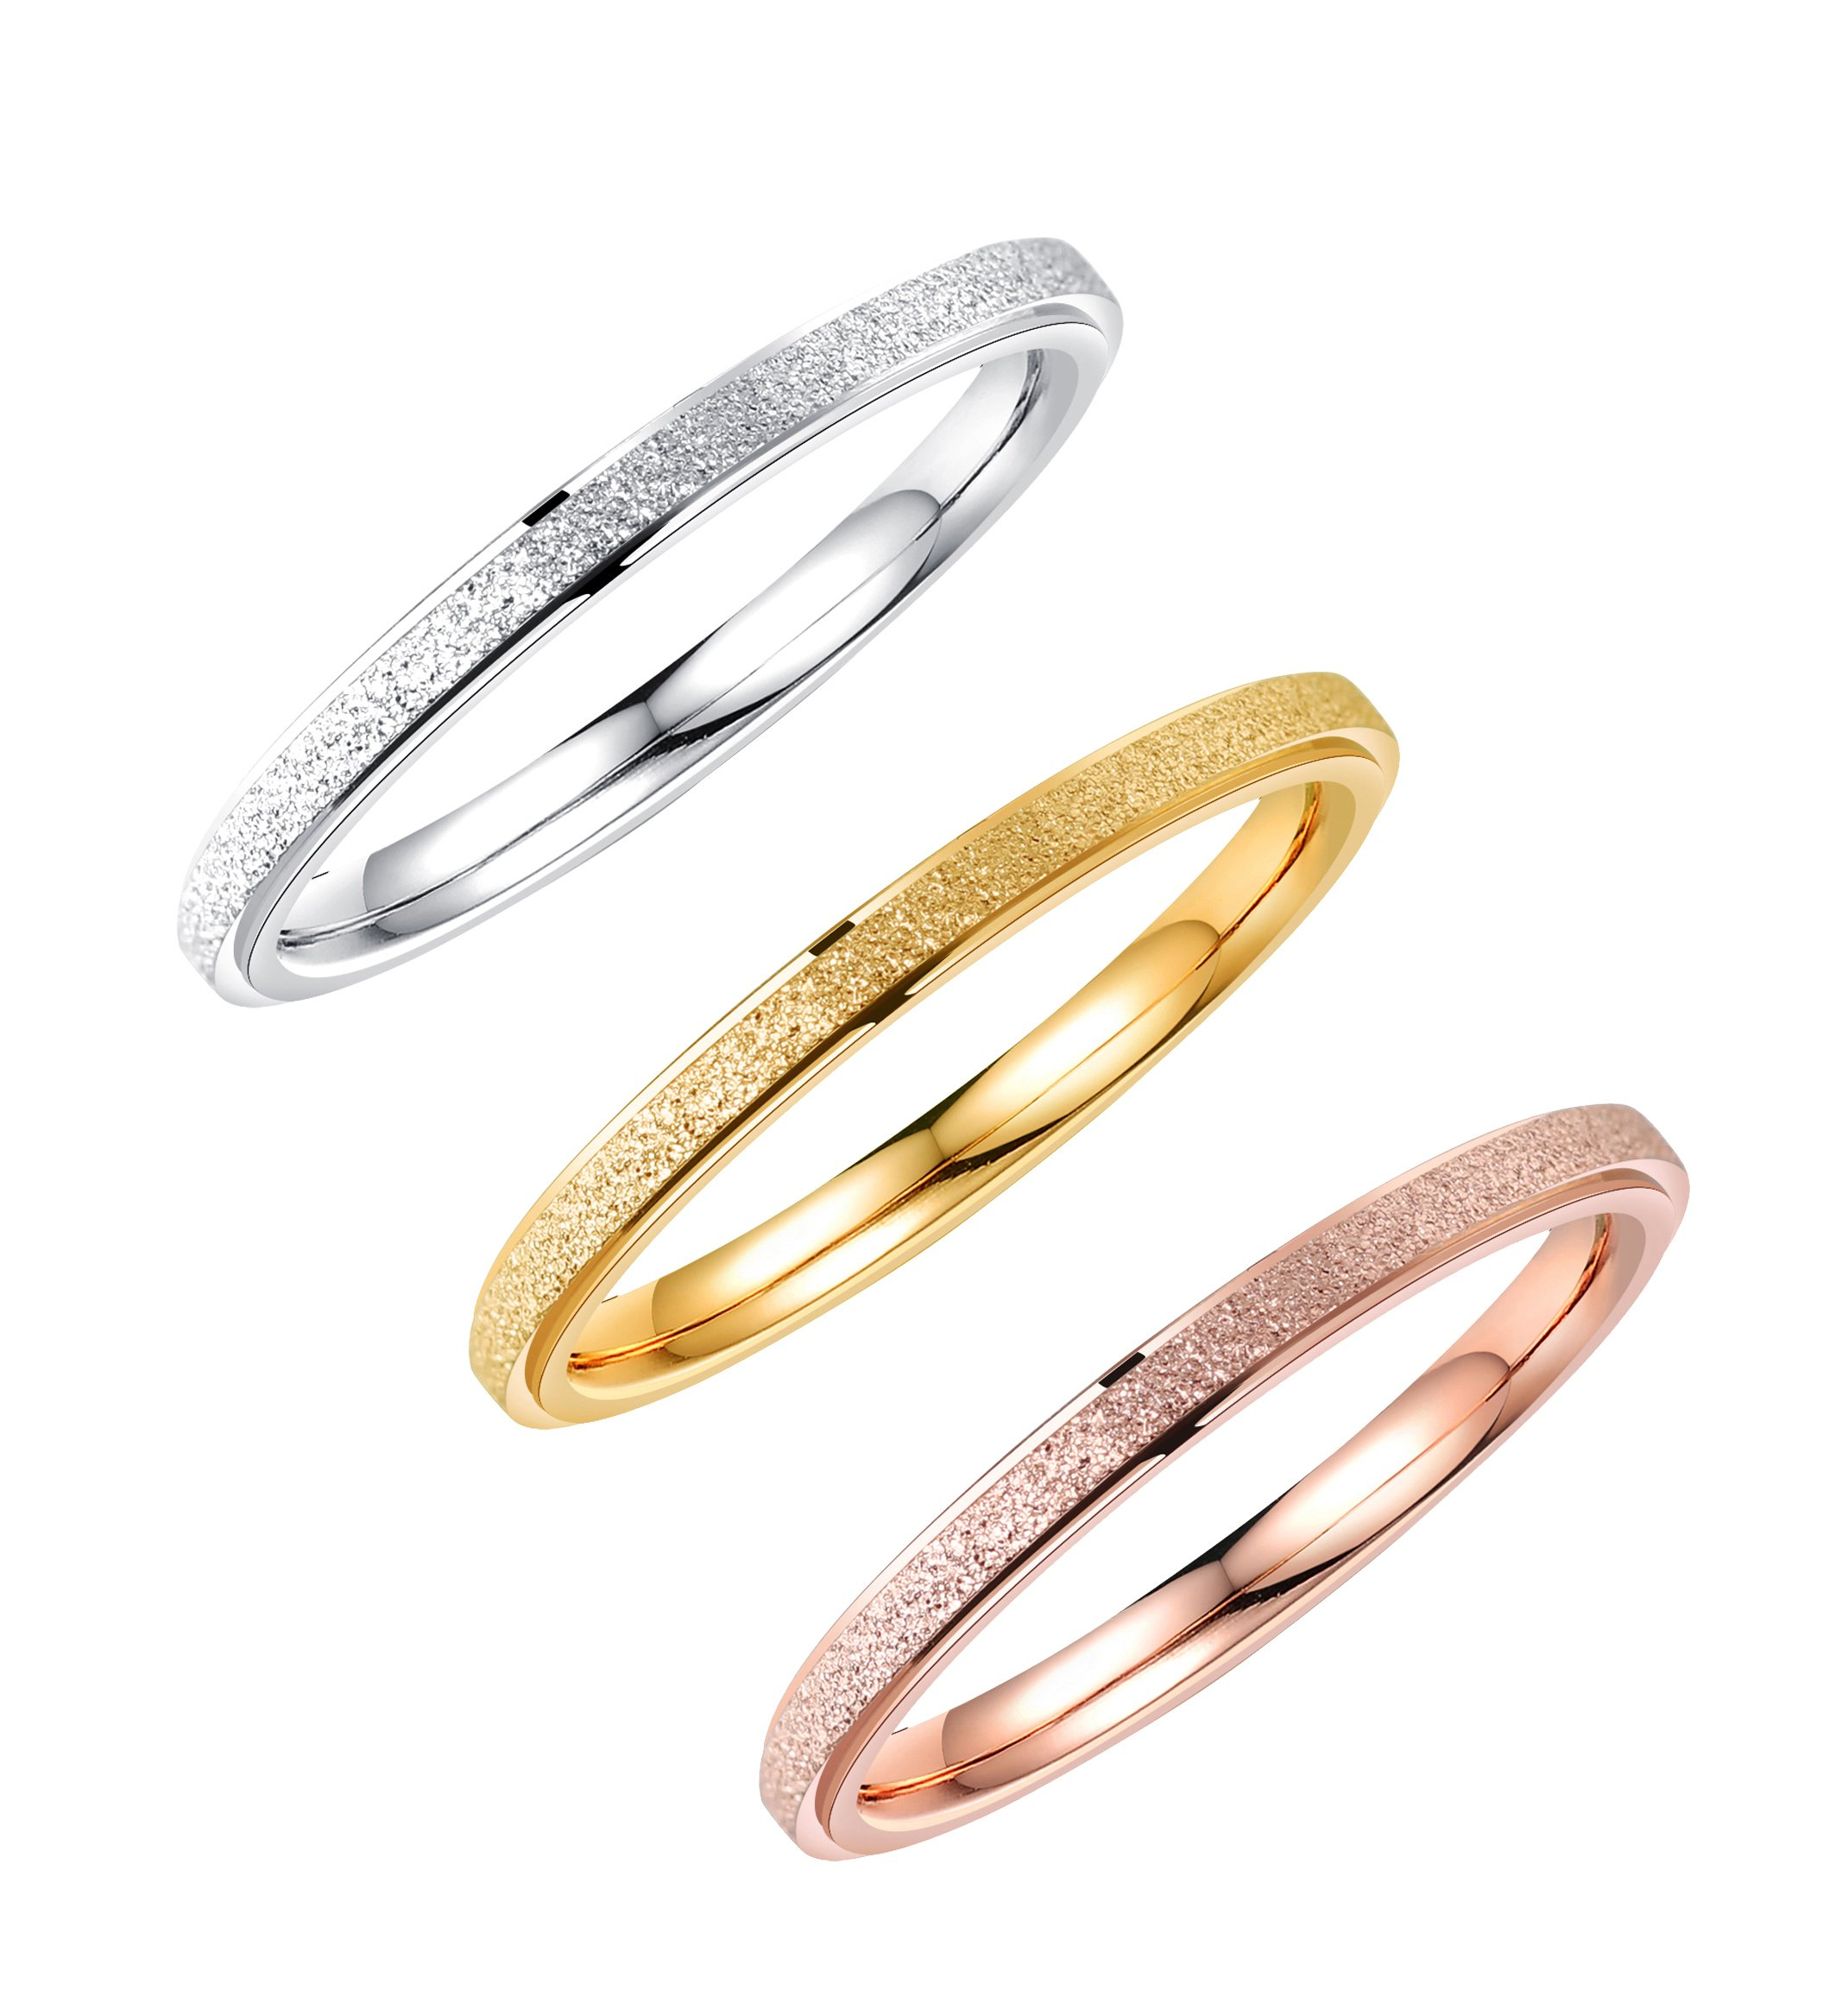 ALEXTINA 3 Pack Stainless Steel 2MM Thin Stackable Midi Rings for Women Rose Gold Silver Wedding Engagement Bands, Size 9